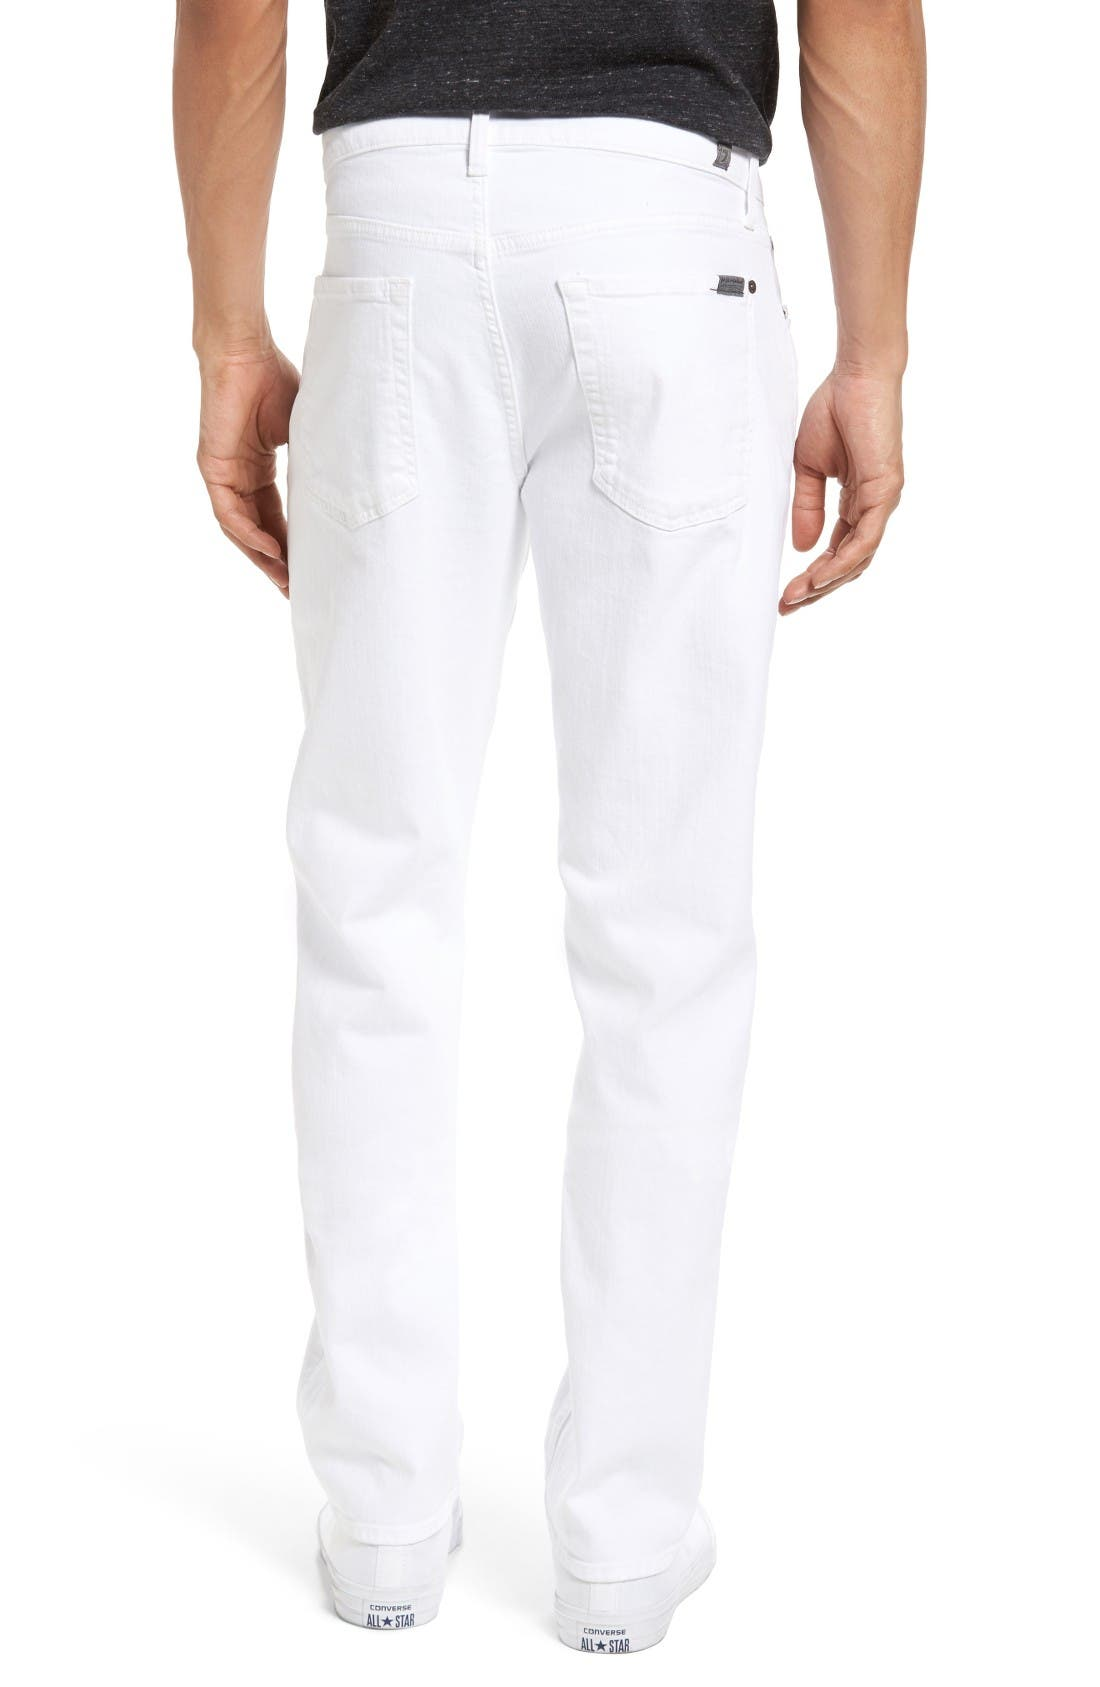 Luxe Performance - Slimmy Slim Fit Jeans,                             Alternate thumbnail 2, color,                             White